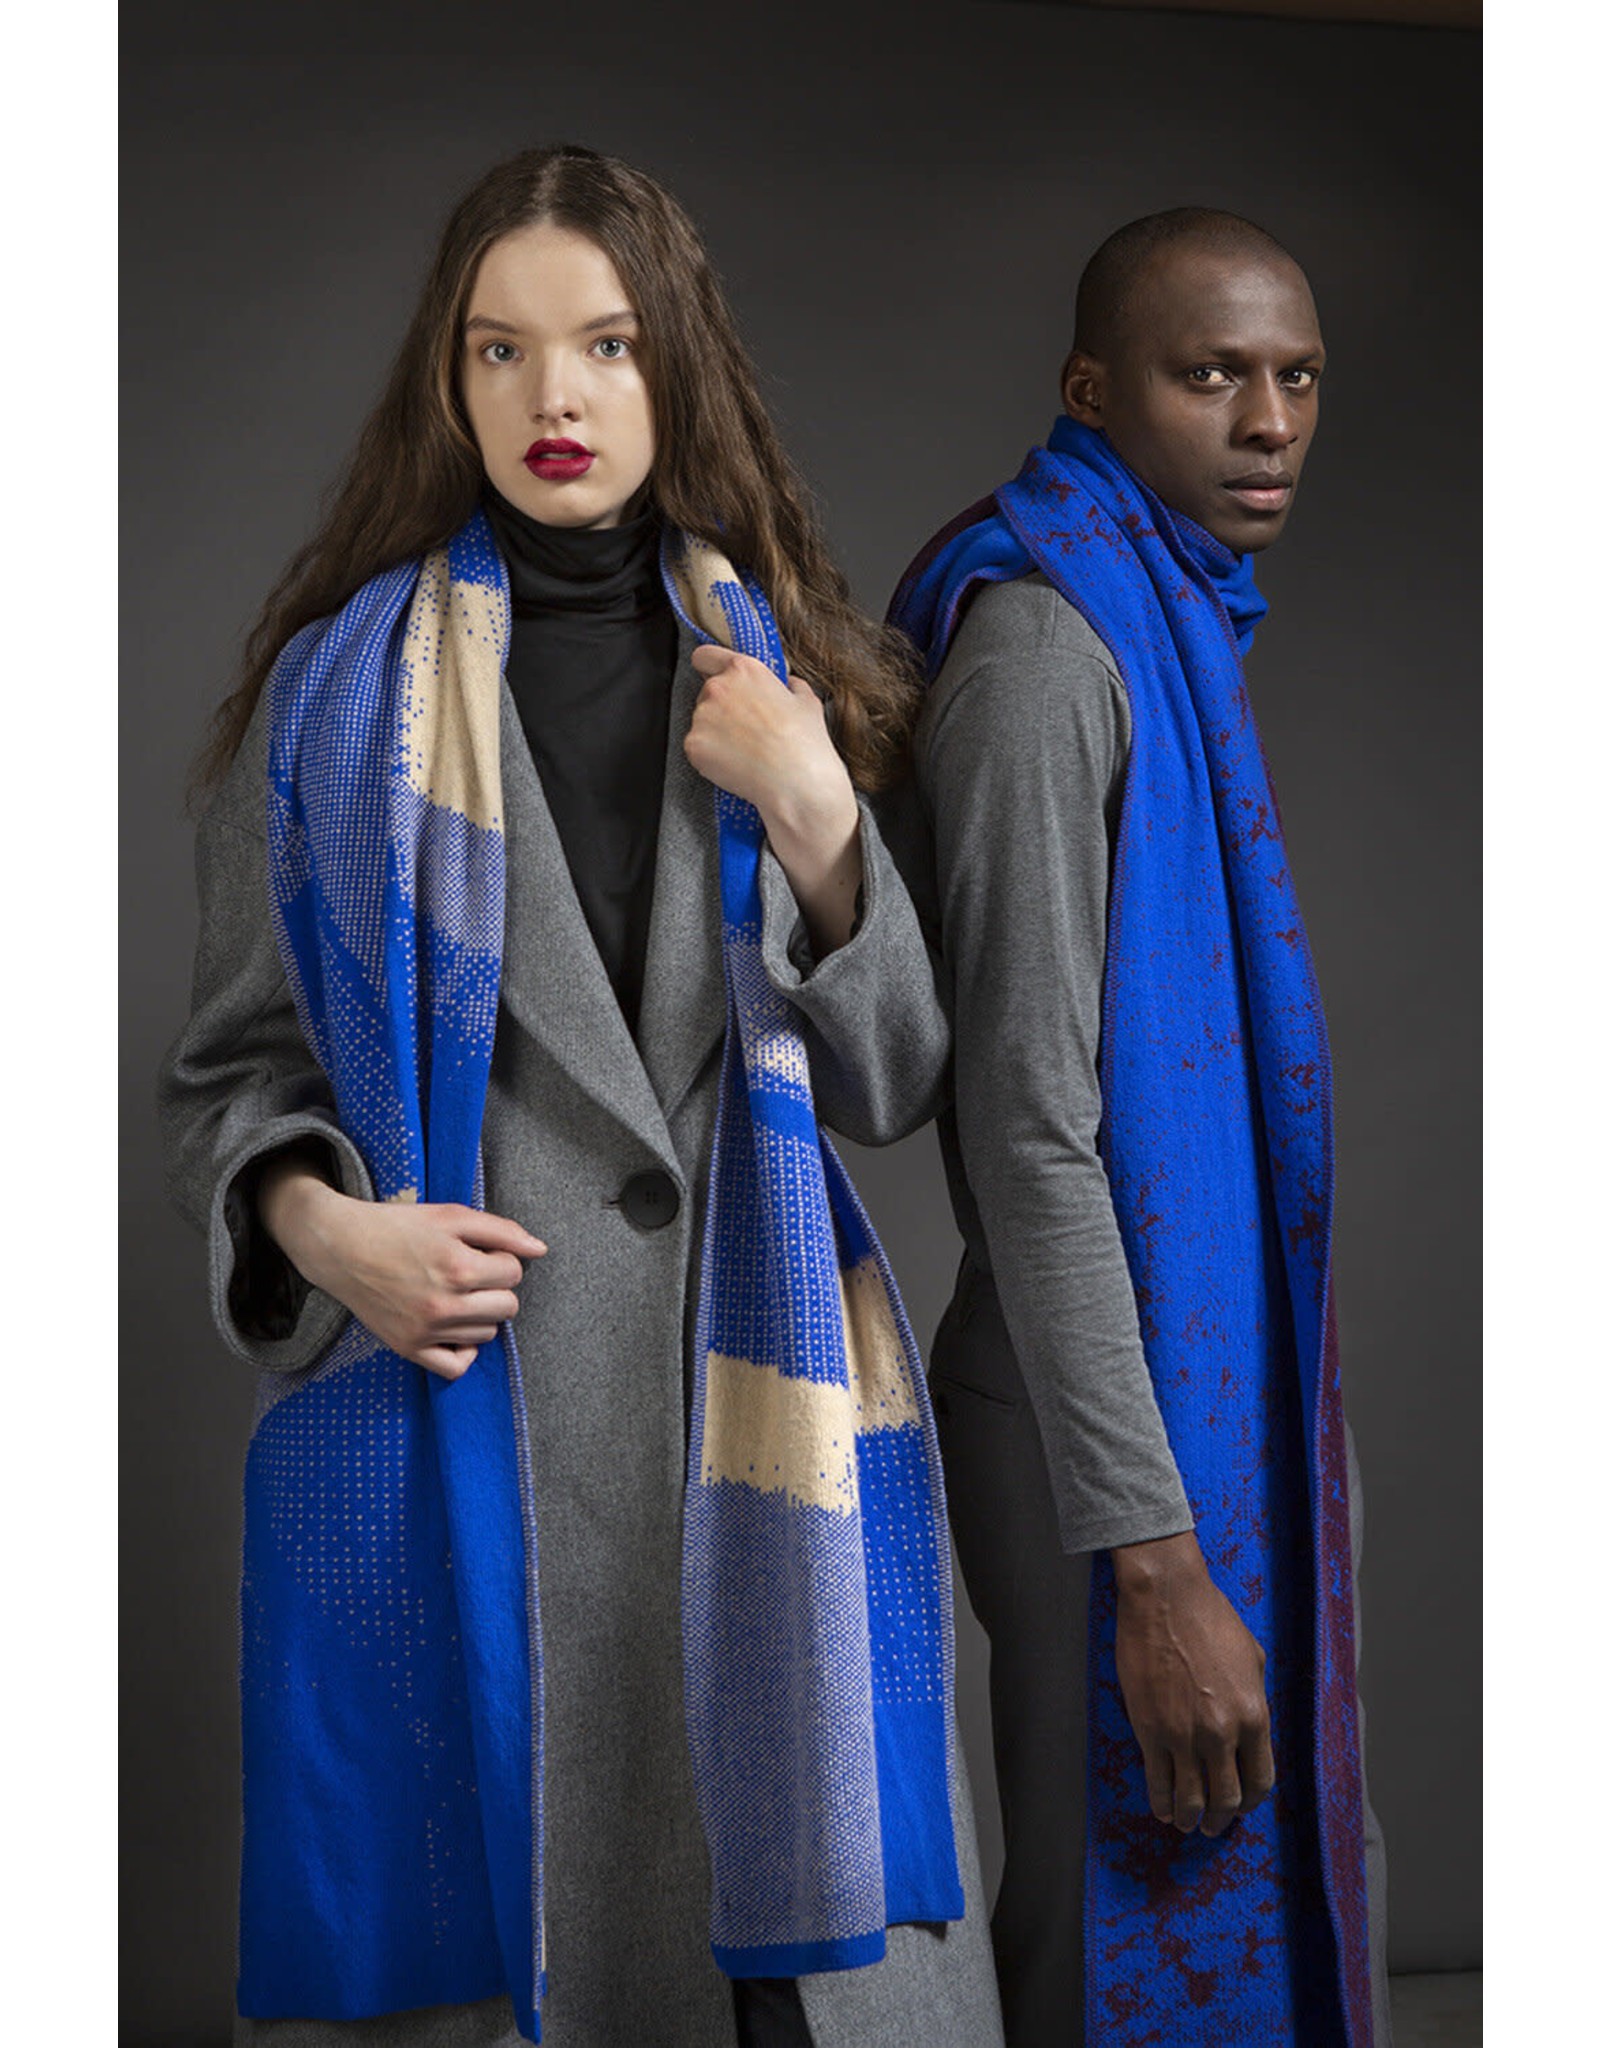 Wolvis Wolvis - 23rd of September 1987 - Nude and Electric Blue - 220cm x 40 - 100% Merino Wool - 100% made in Belgium